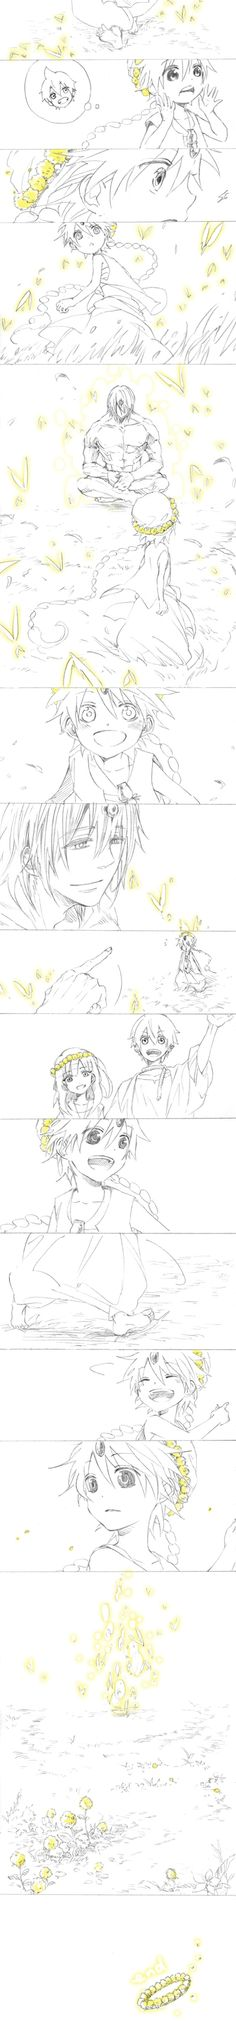 Magi - Aladdin, Morgiana, Alibaba and Ugo